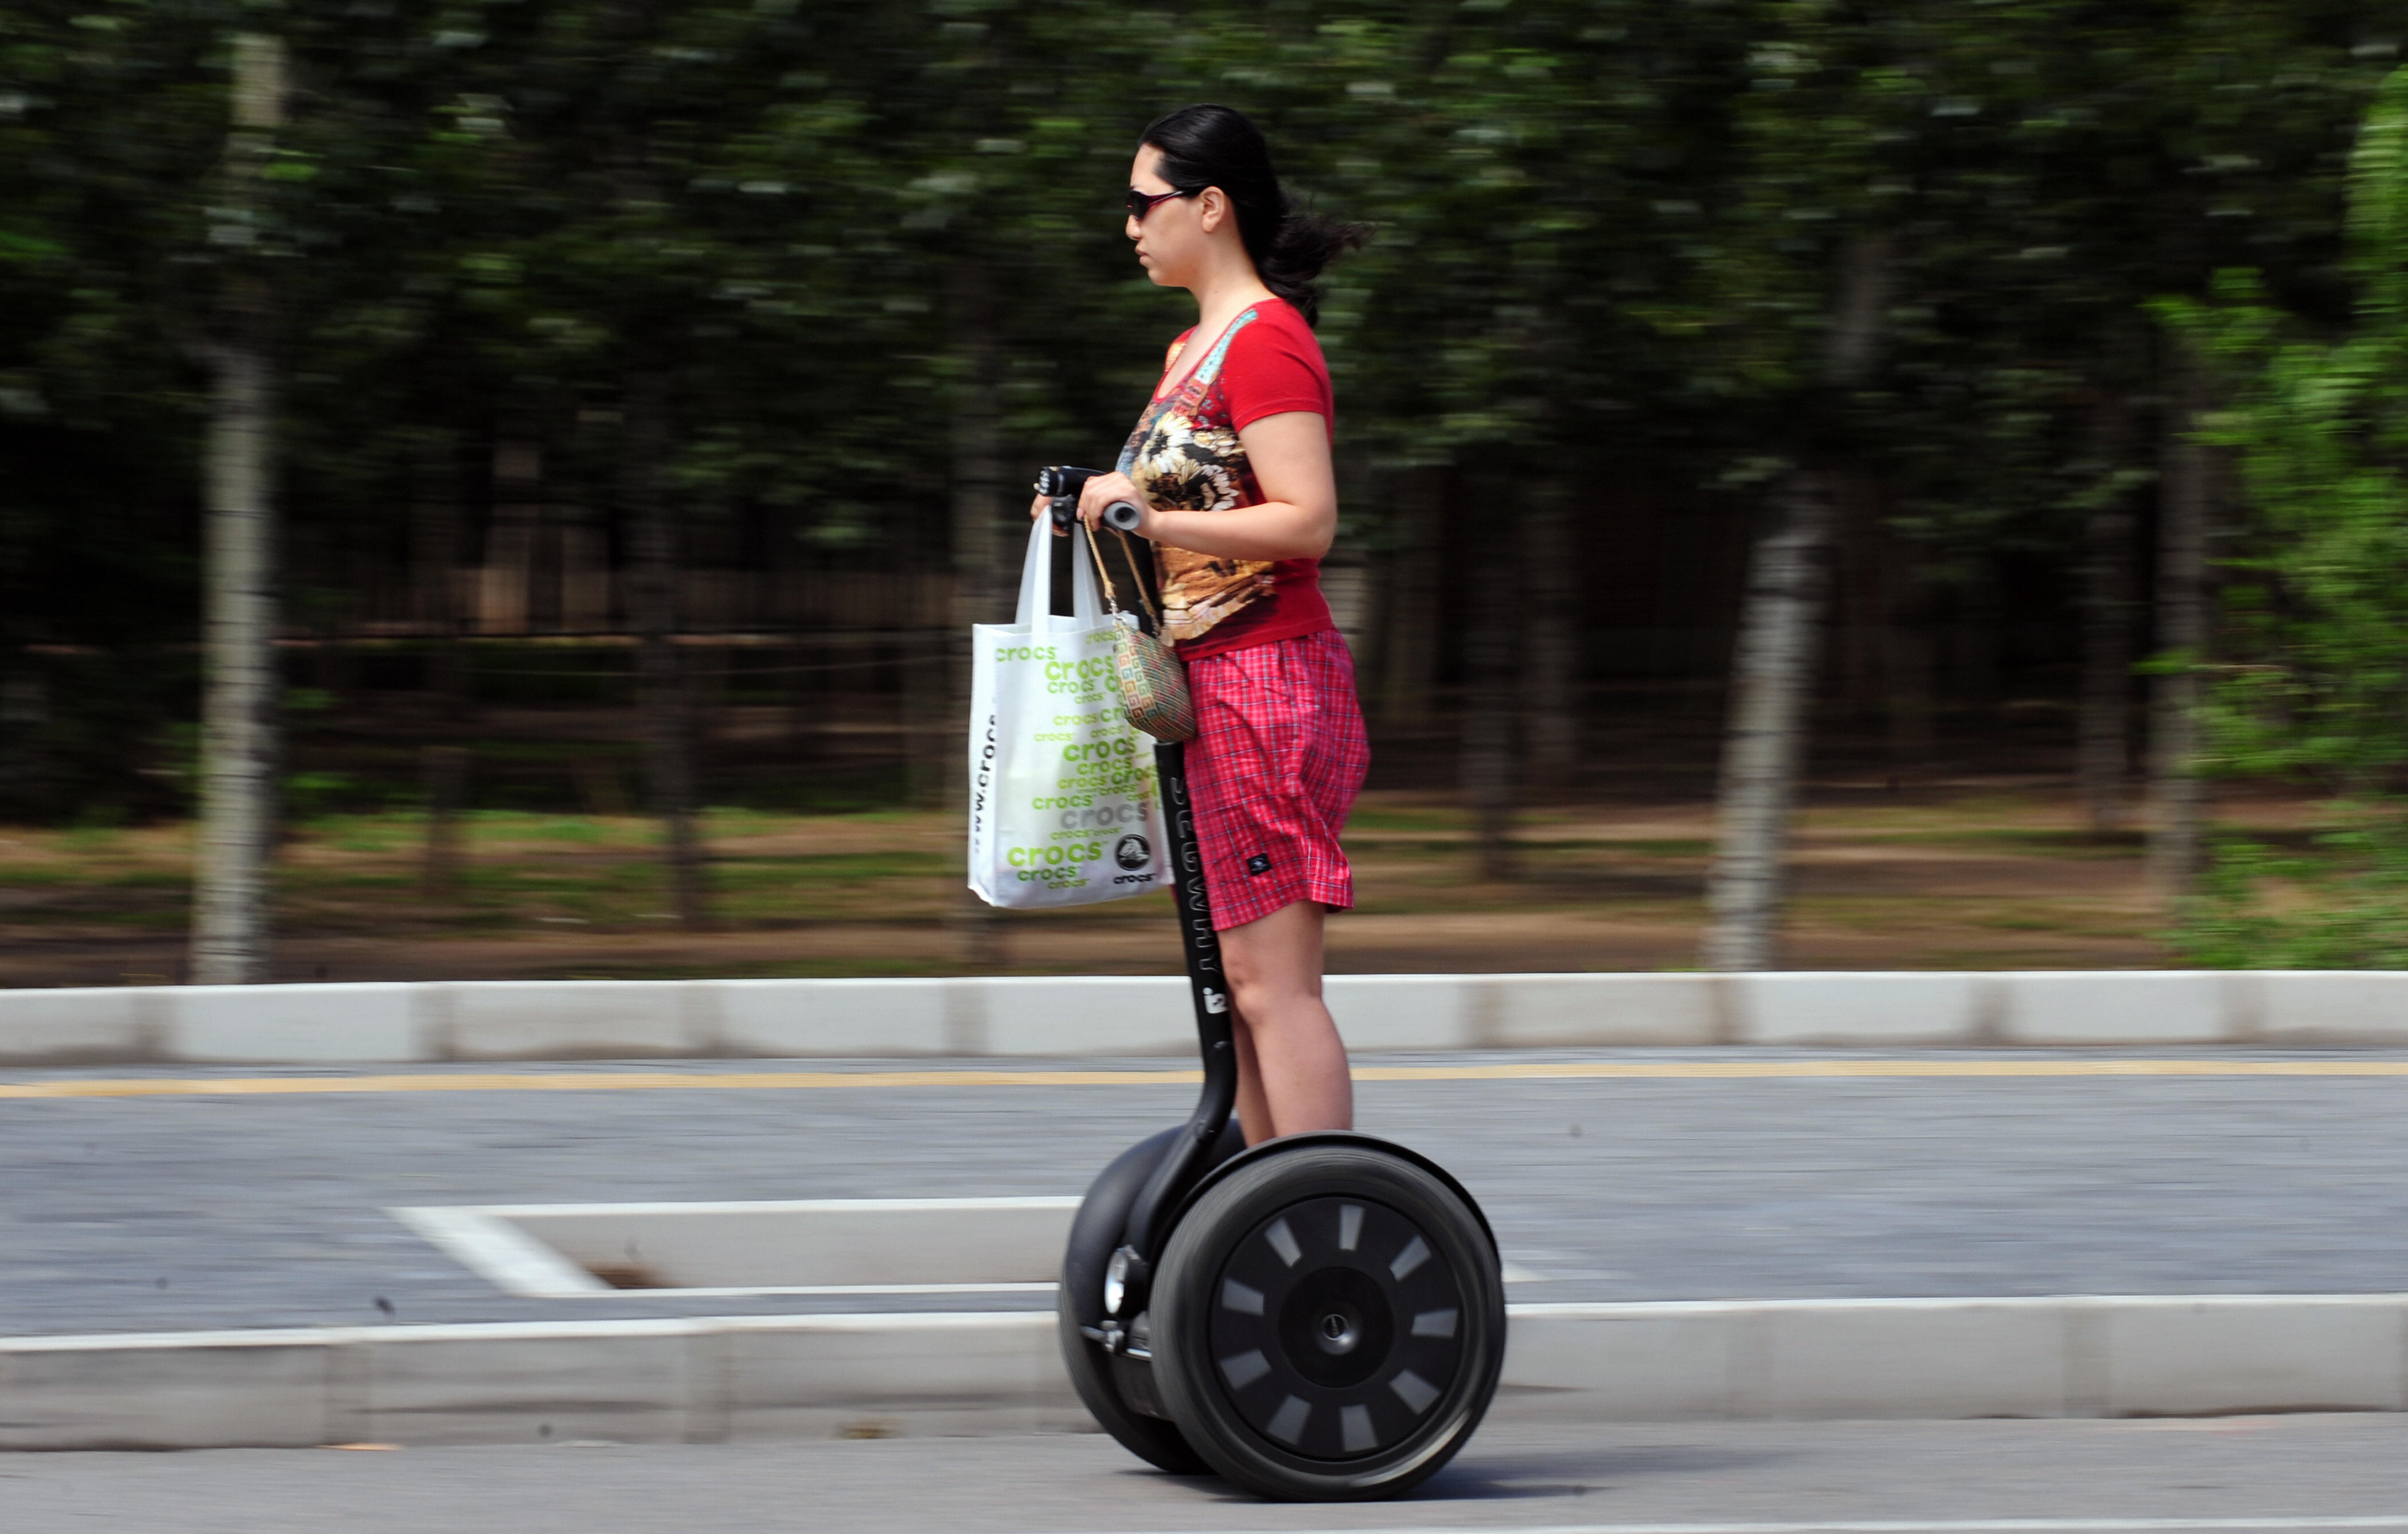 A woman commutes on a Segway electric, self-balancing scooter in Beijing, China, on June 9, 2009.